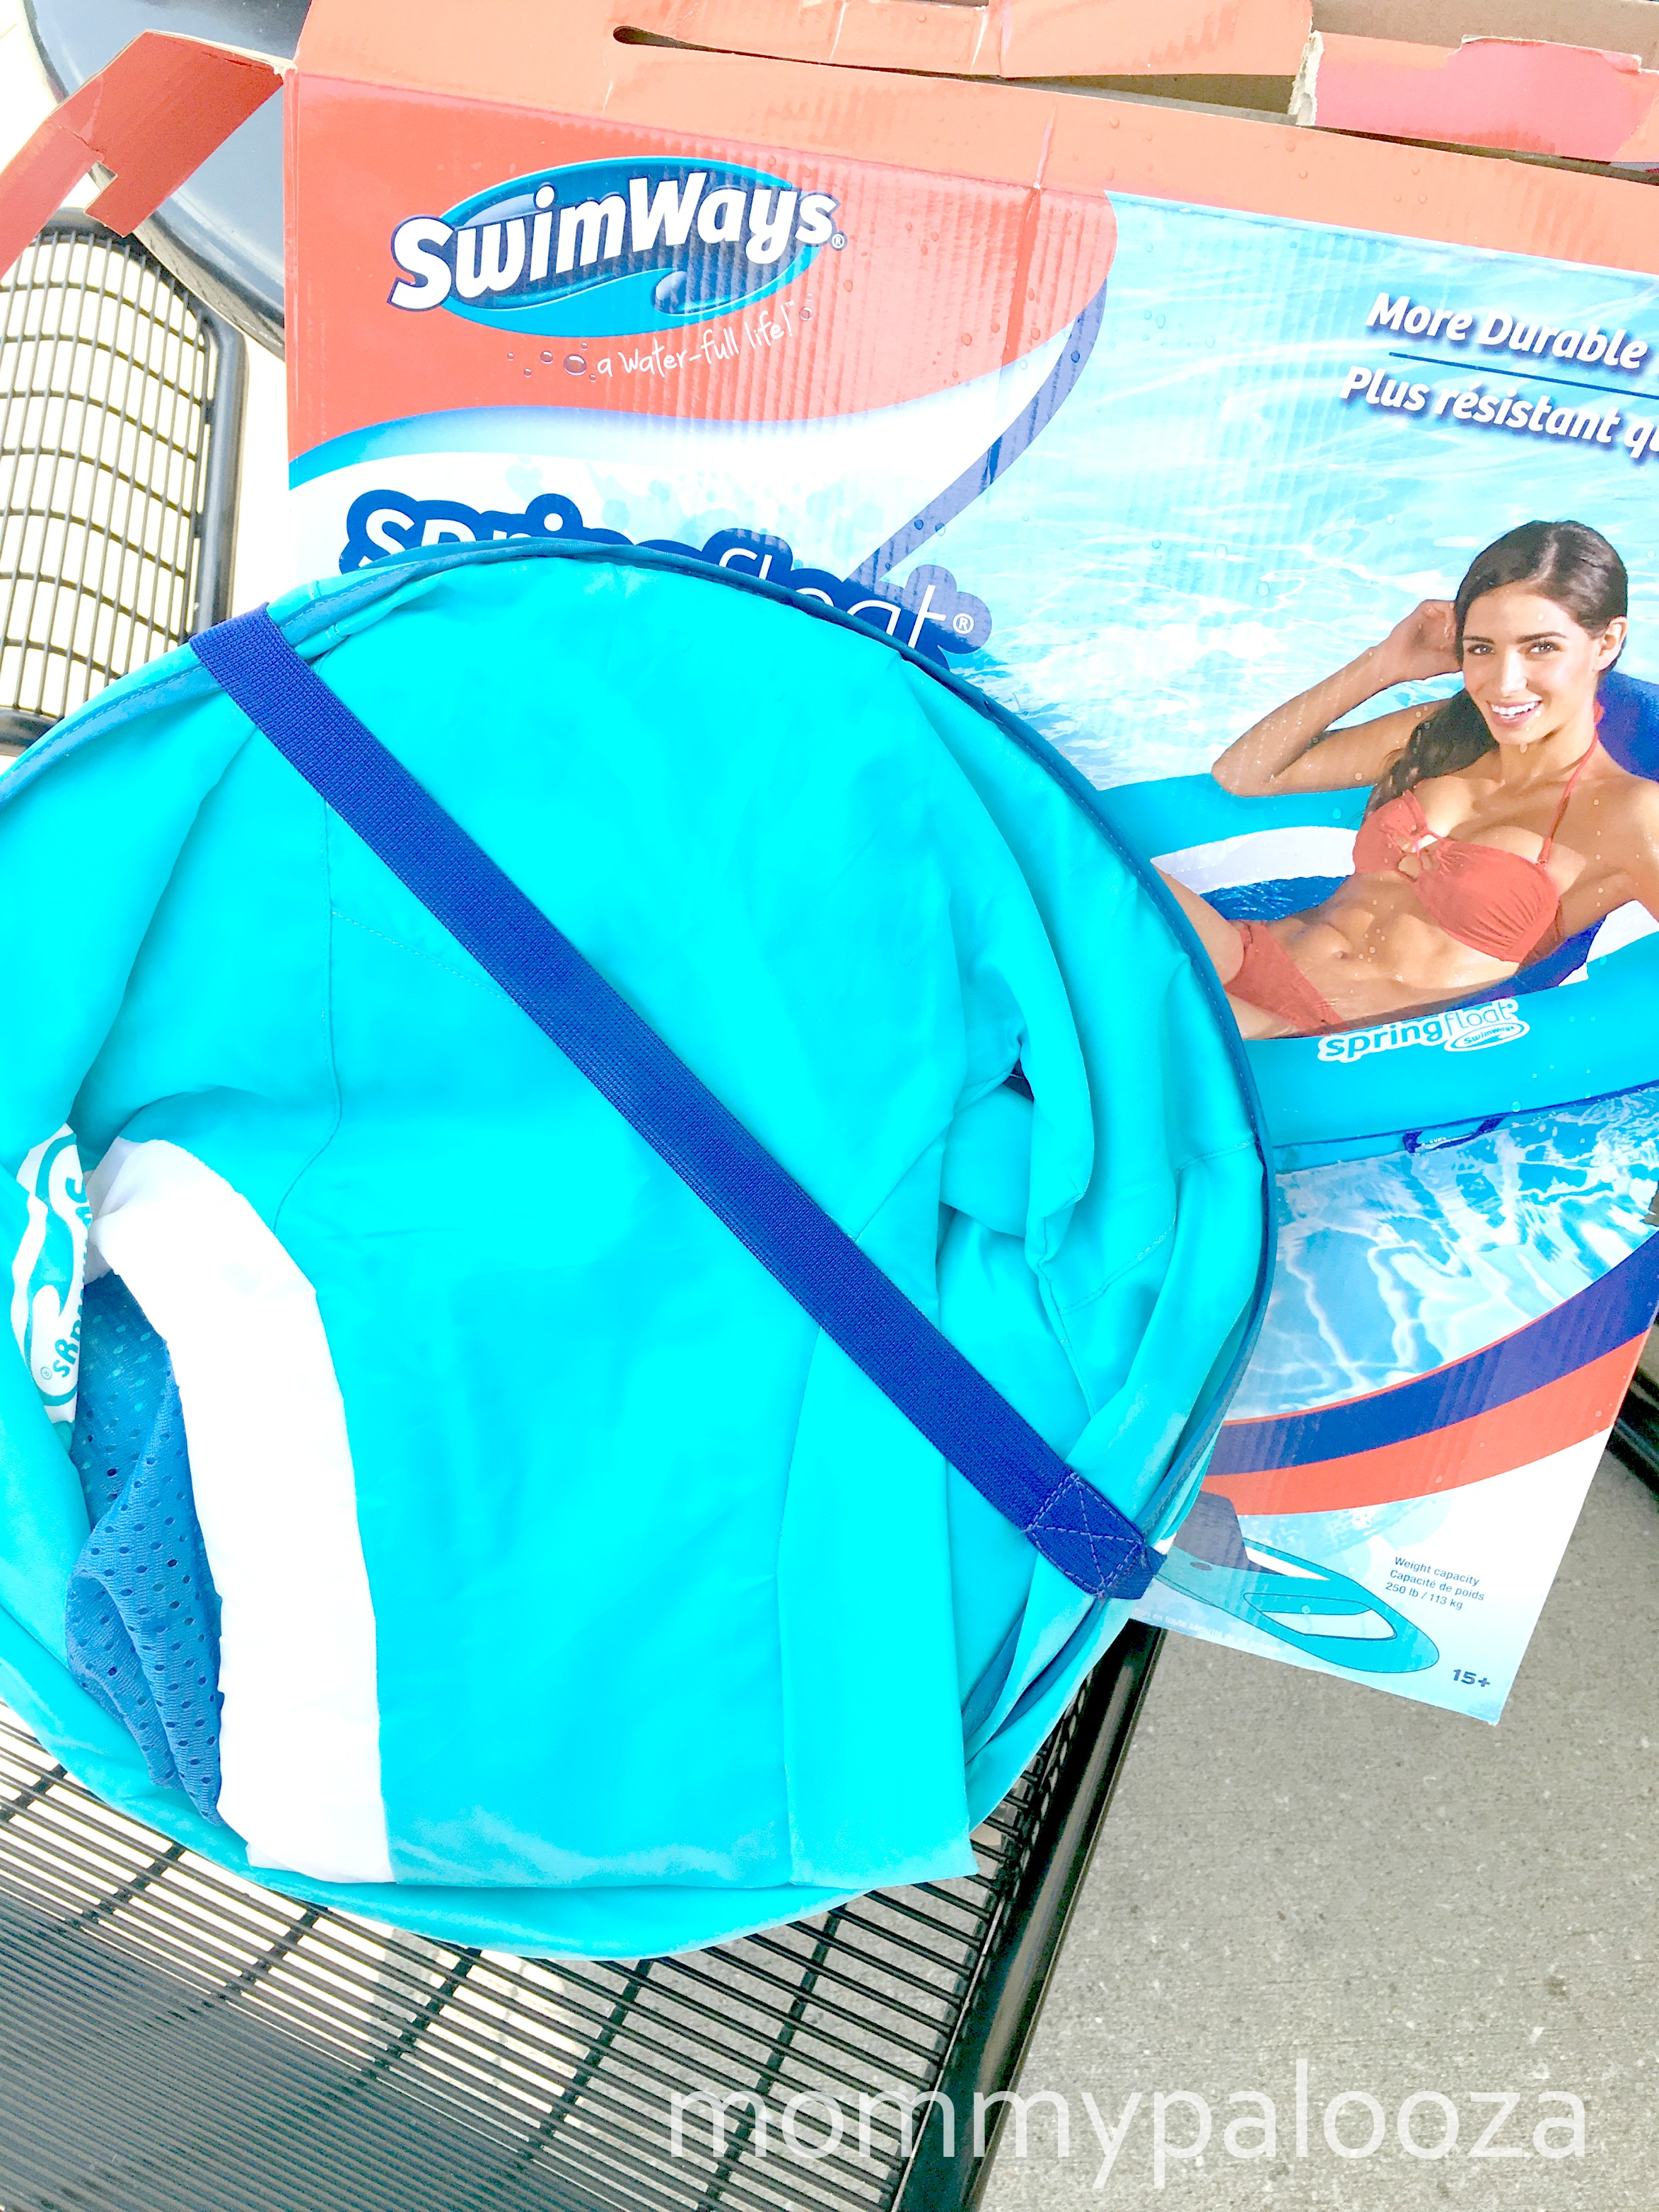 Relax in the Pool with SwimWays Spring Float Recliner #SwimWays  sc 1 st  Mommypalooza & Relax in the Pool with SwimWays Spring Float Recliner #SwimWays ... islam-shia.org